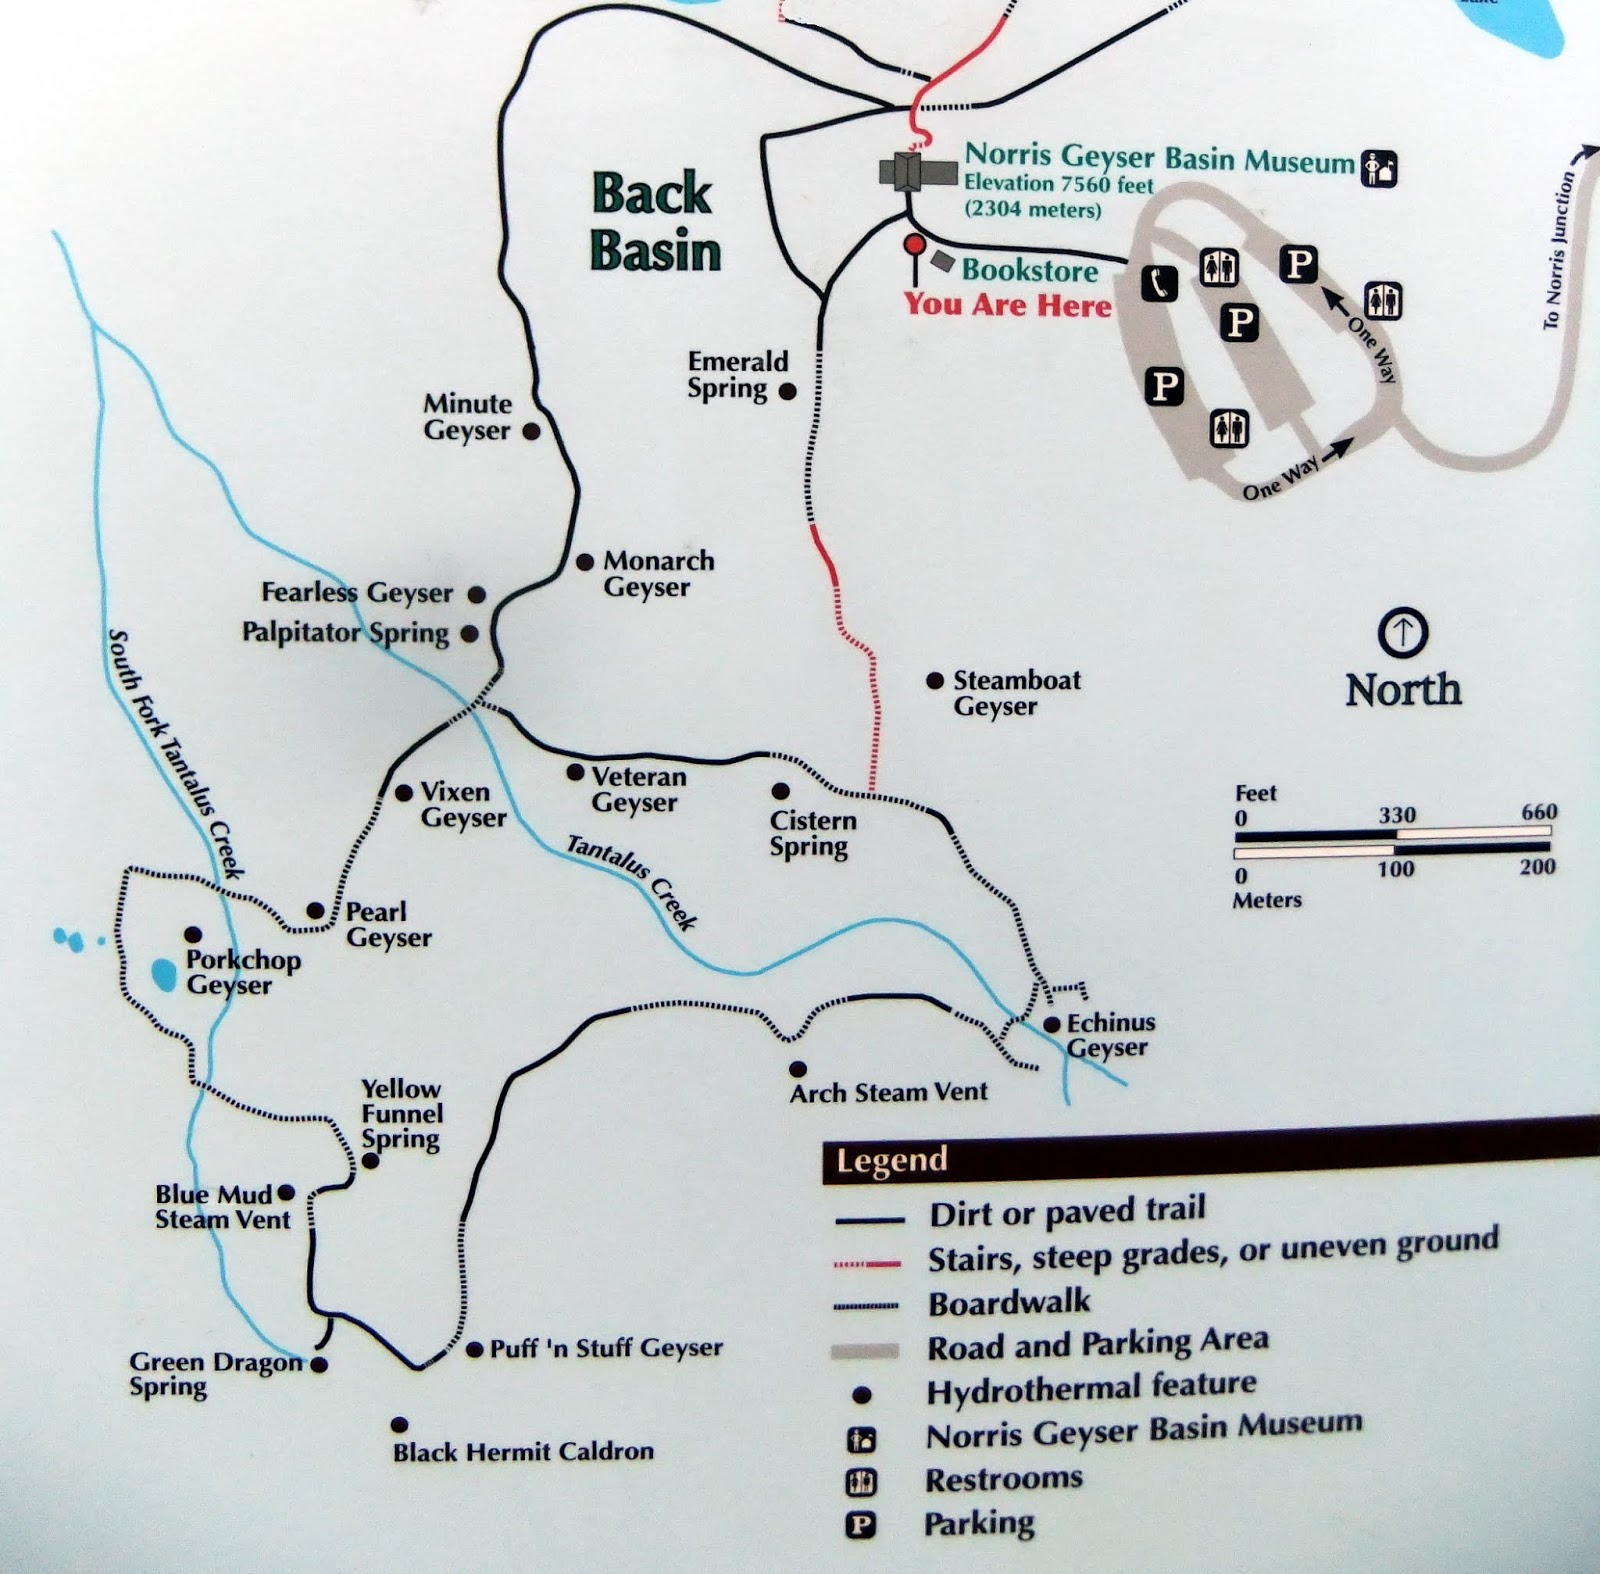 back basin nps map